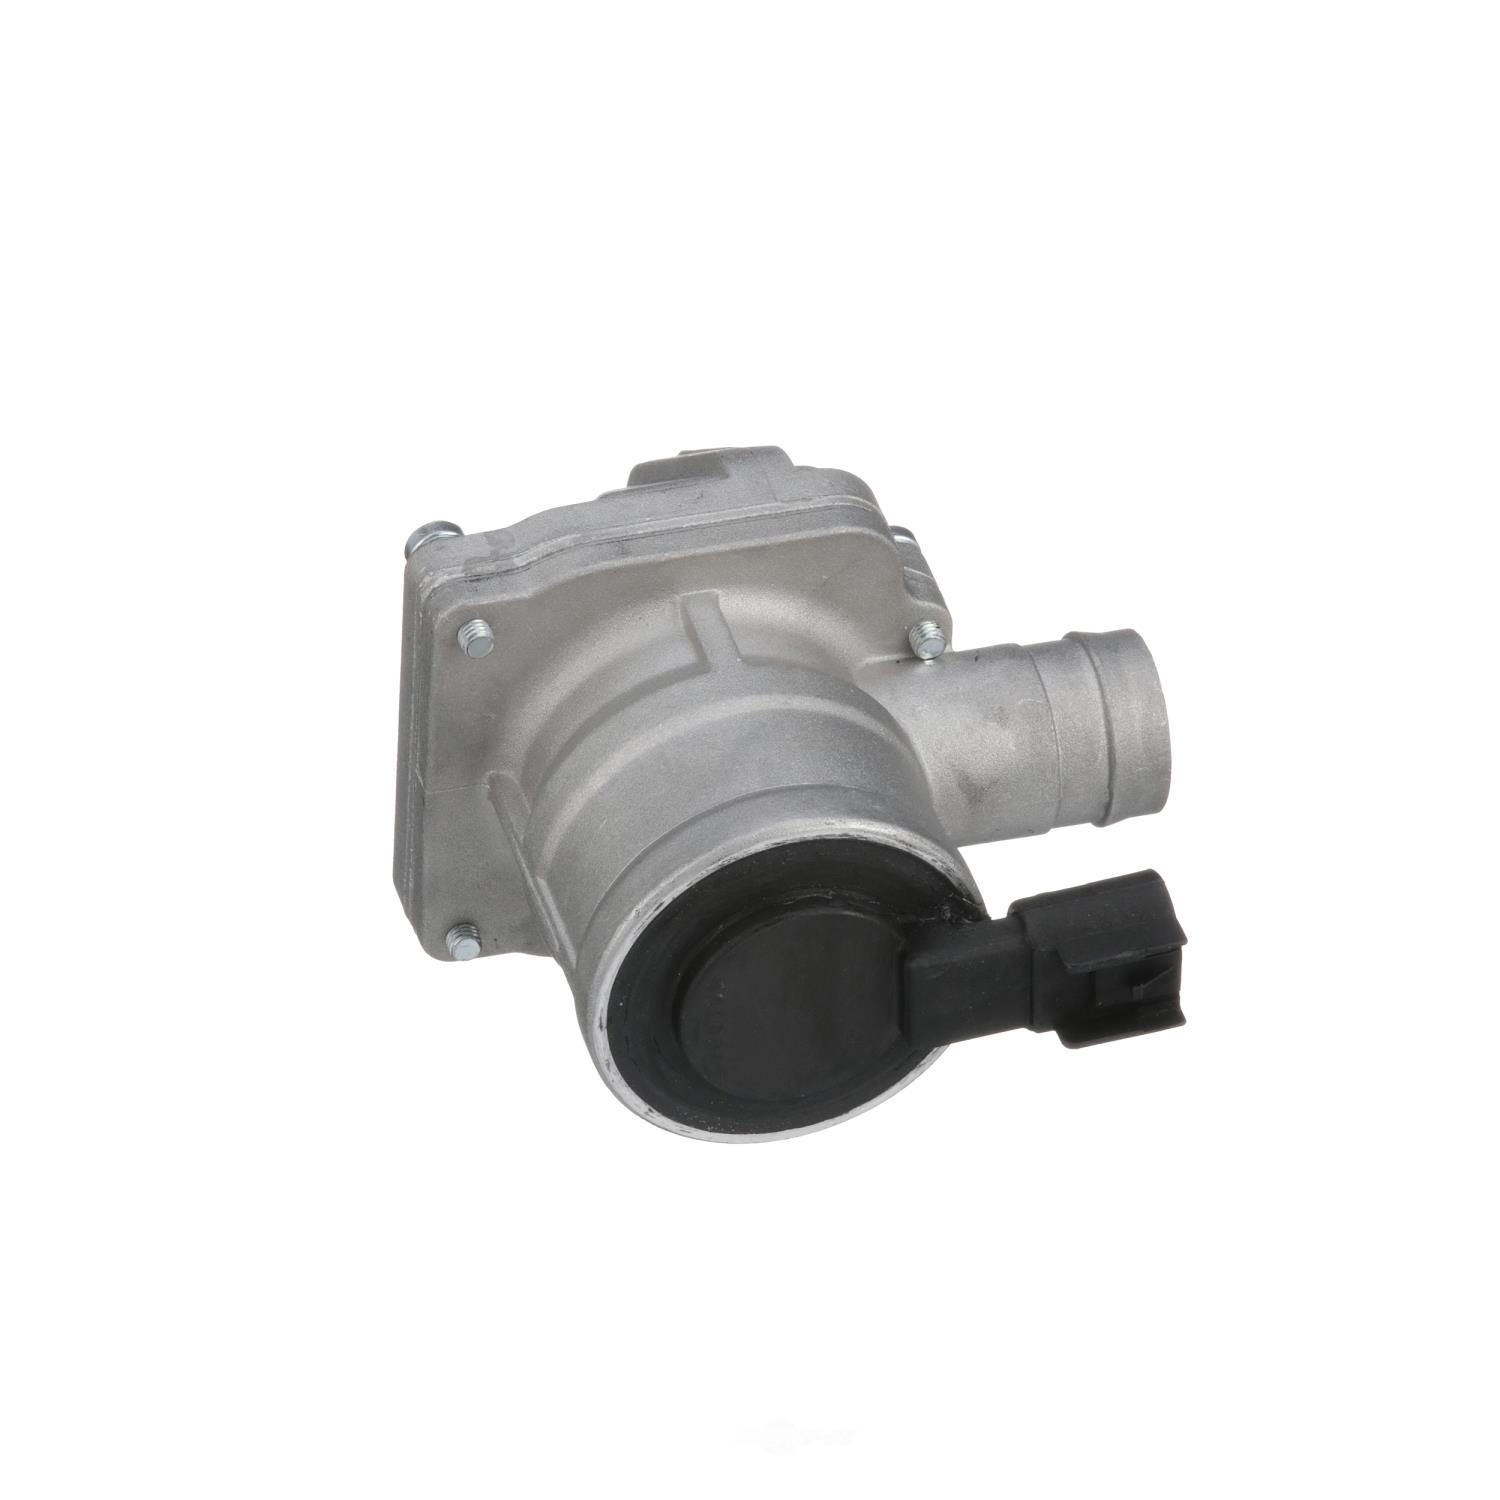 STANDARD MOTOR PRODUCTS - Secondary Air Injection Pump Check Valve - STA DV131